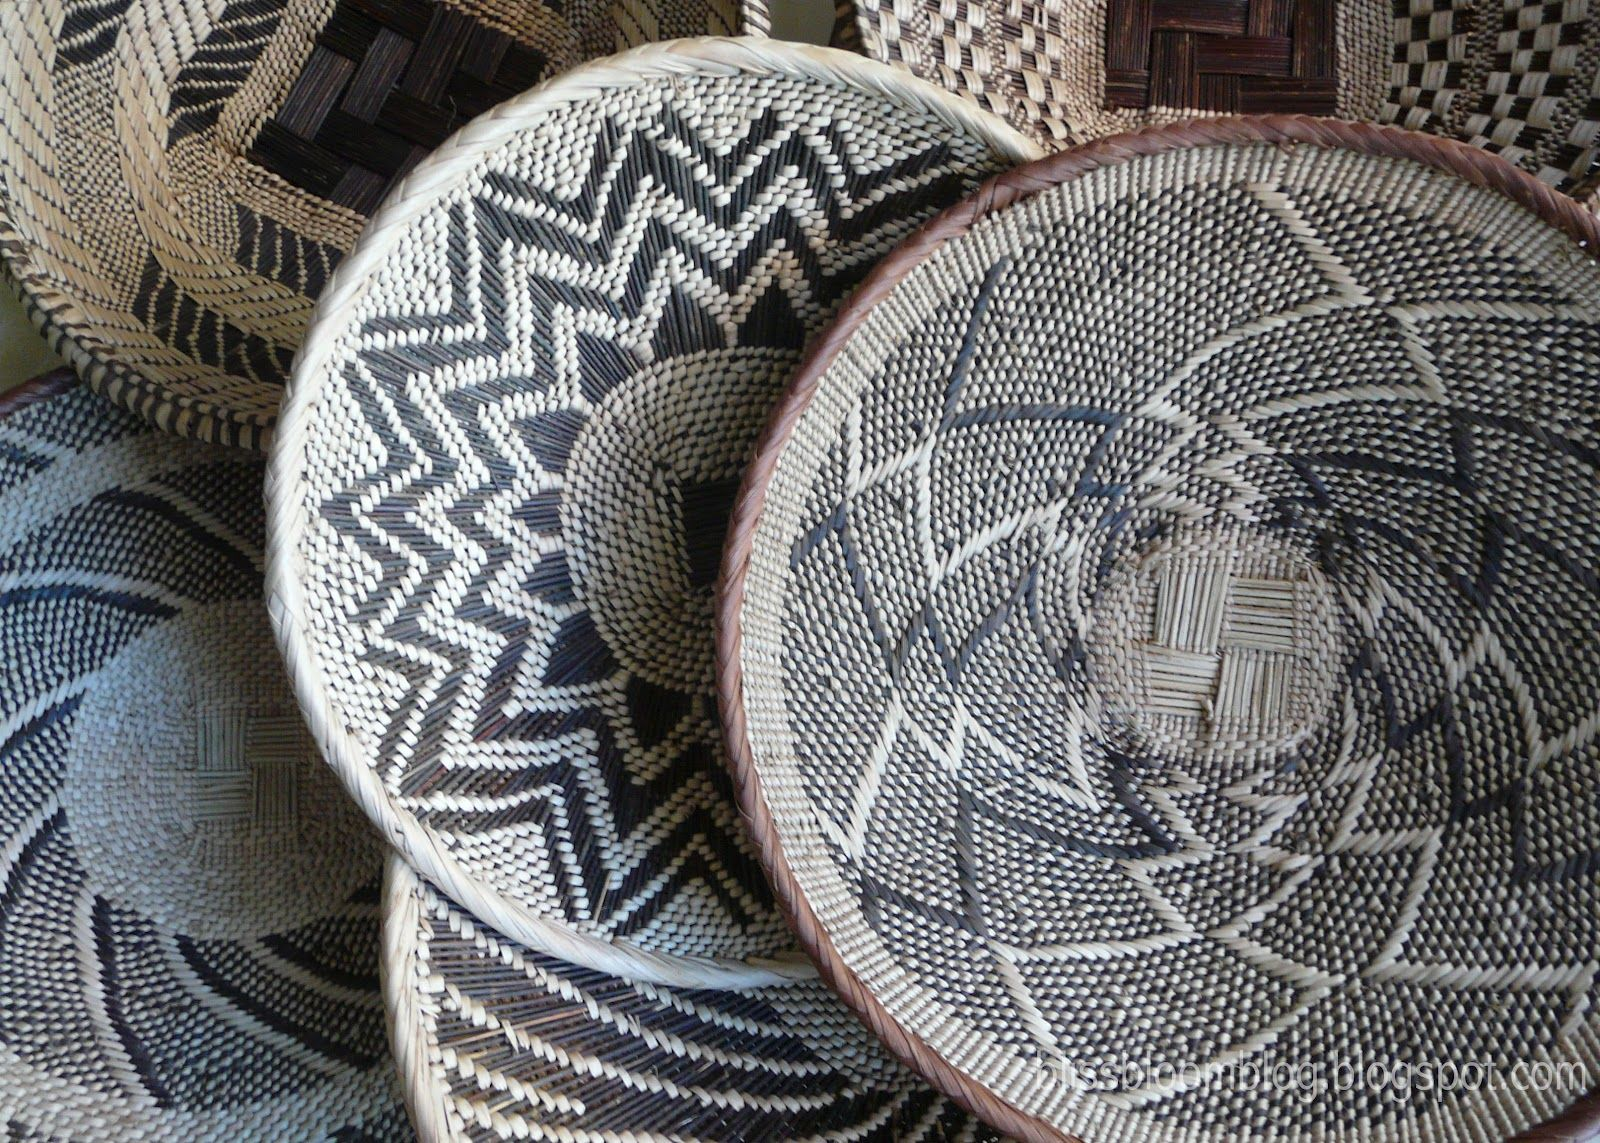 Decorative baskets for the home click read more for the full decorative baskets for the home click read more for the amipublicfo Gallery